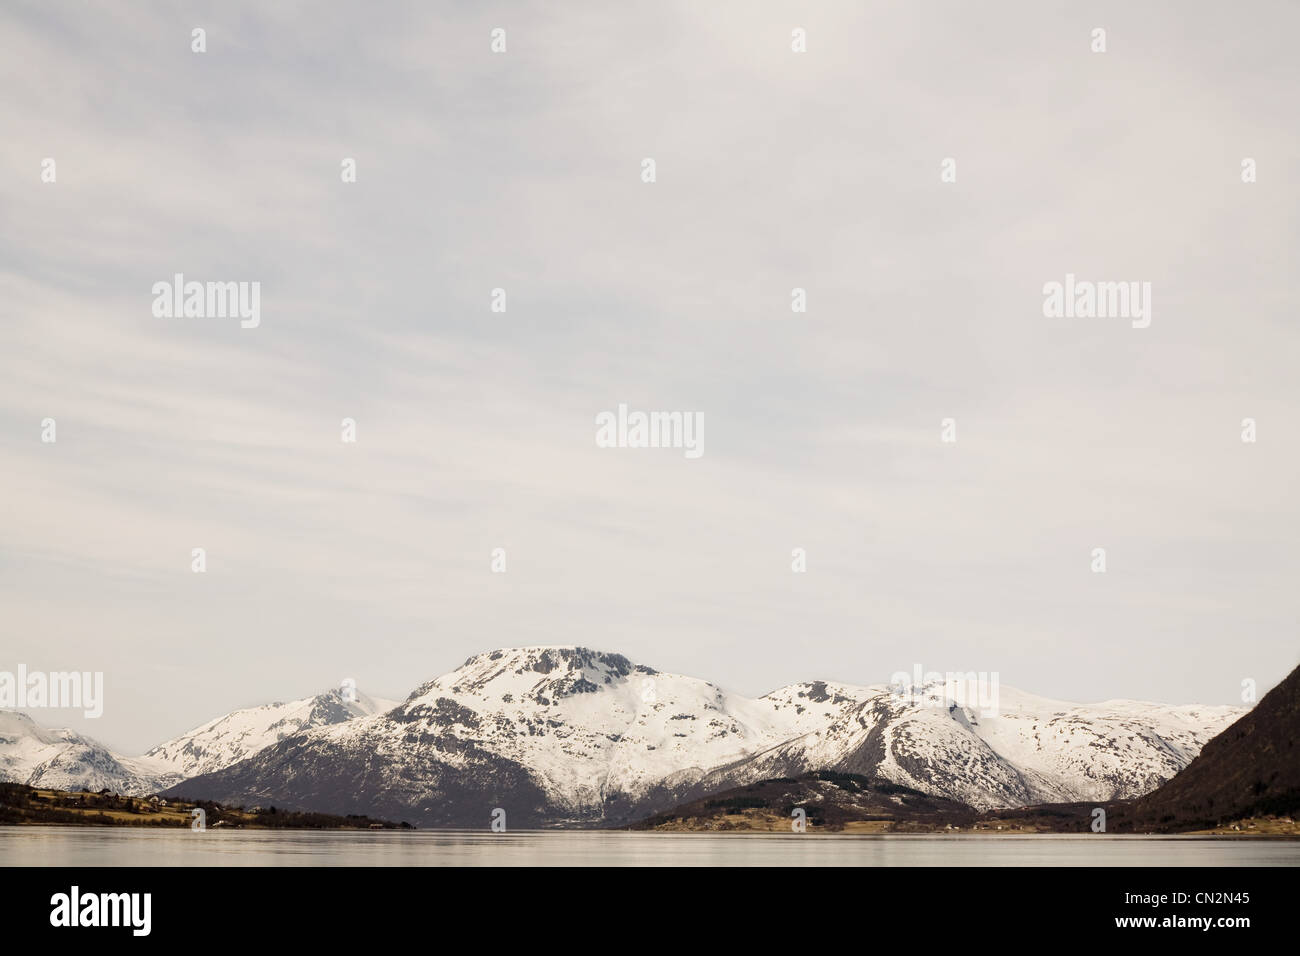 Snowcapped mountains and fjord, Lofoten, Norway - Stock Image